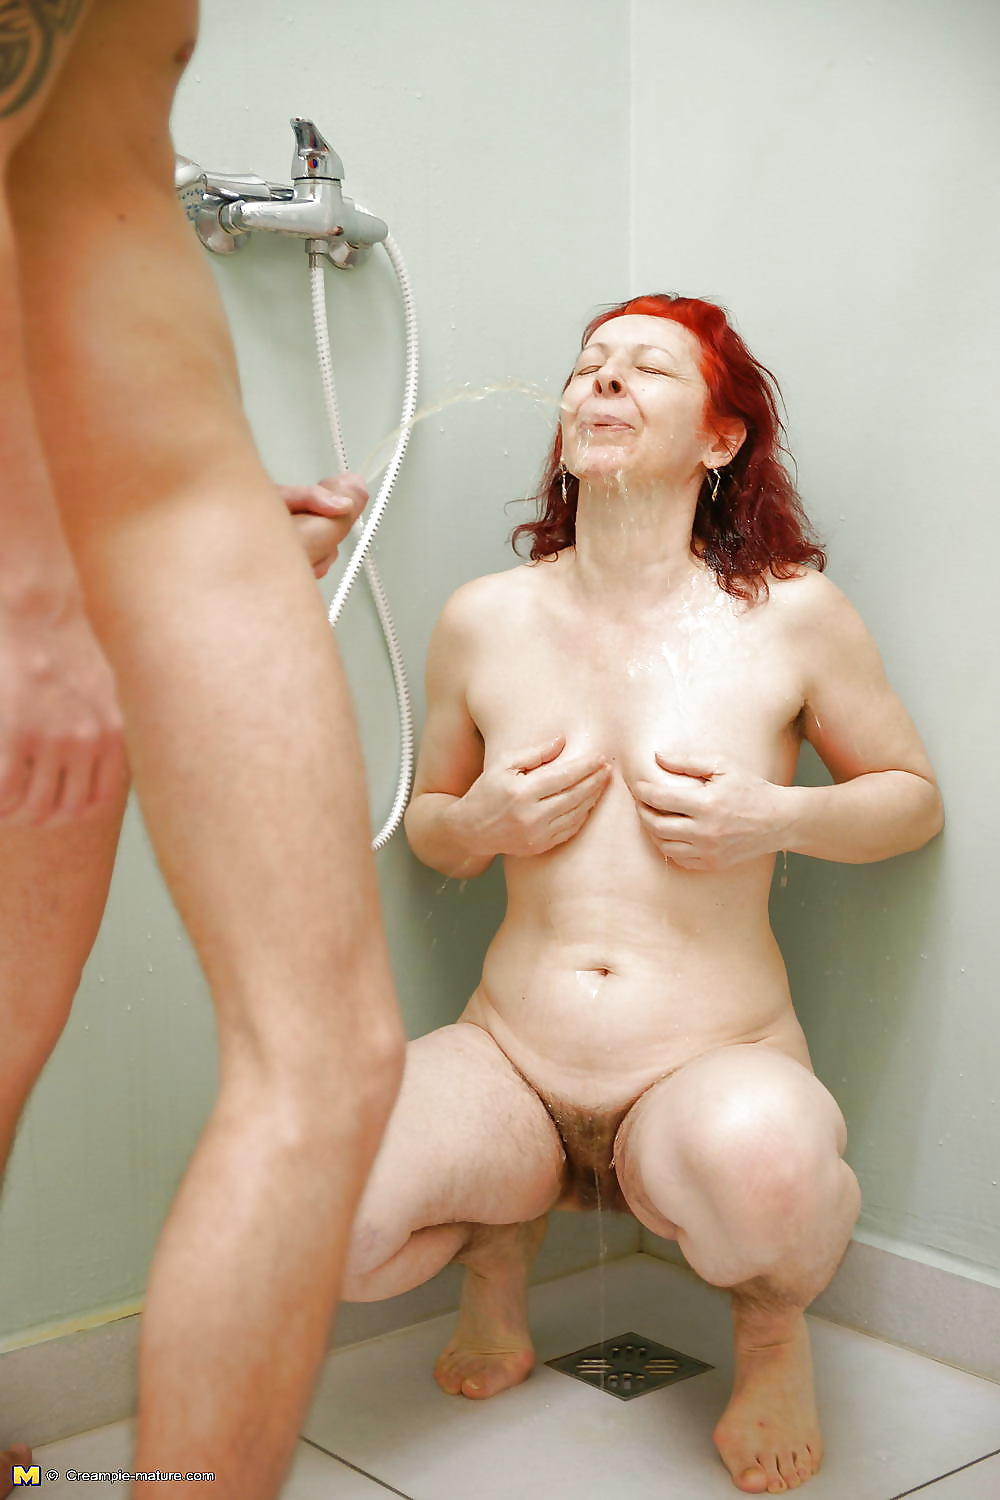 Masc Pantyboy Pissing In The Shower